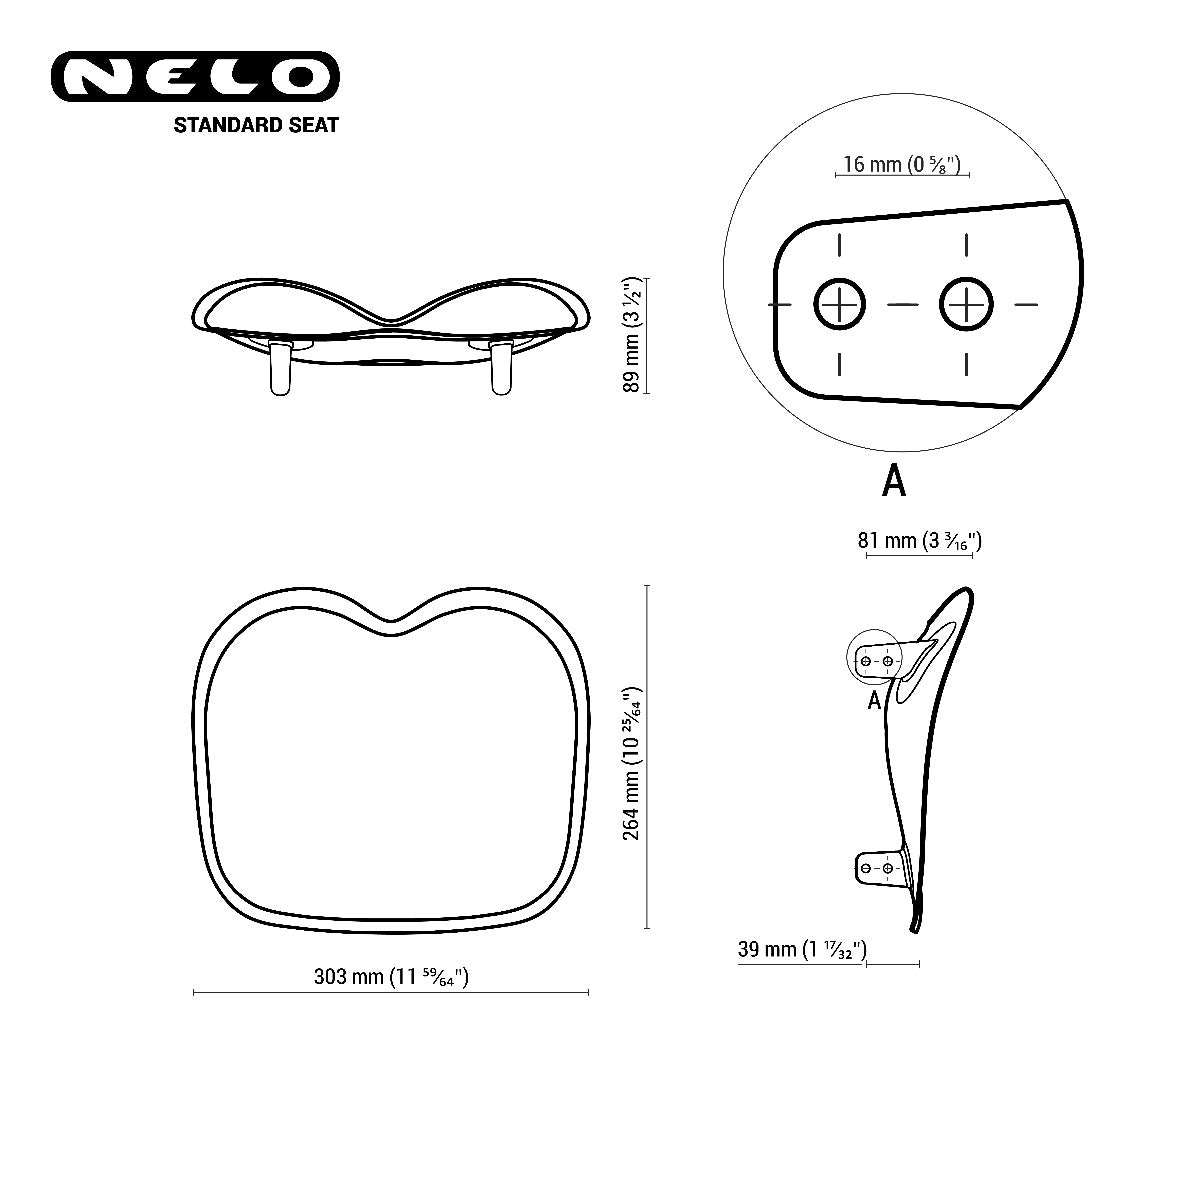 Nelo seat standard technical drawing